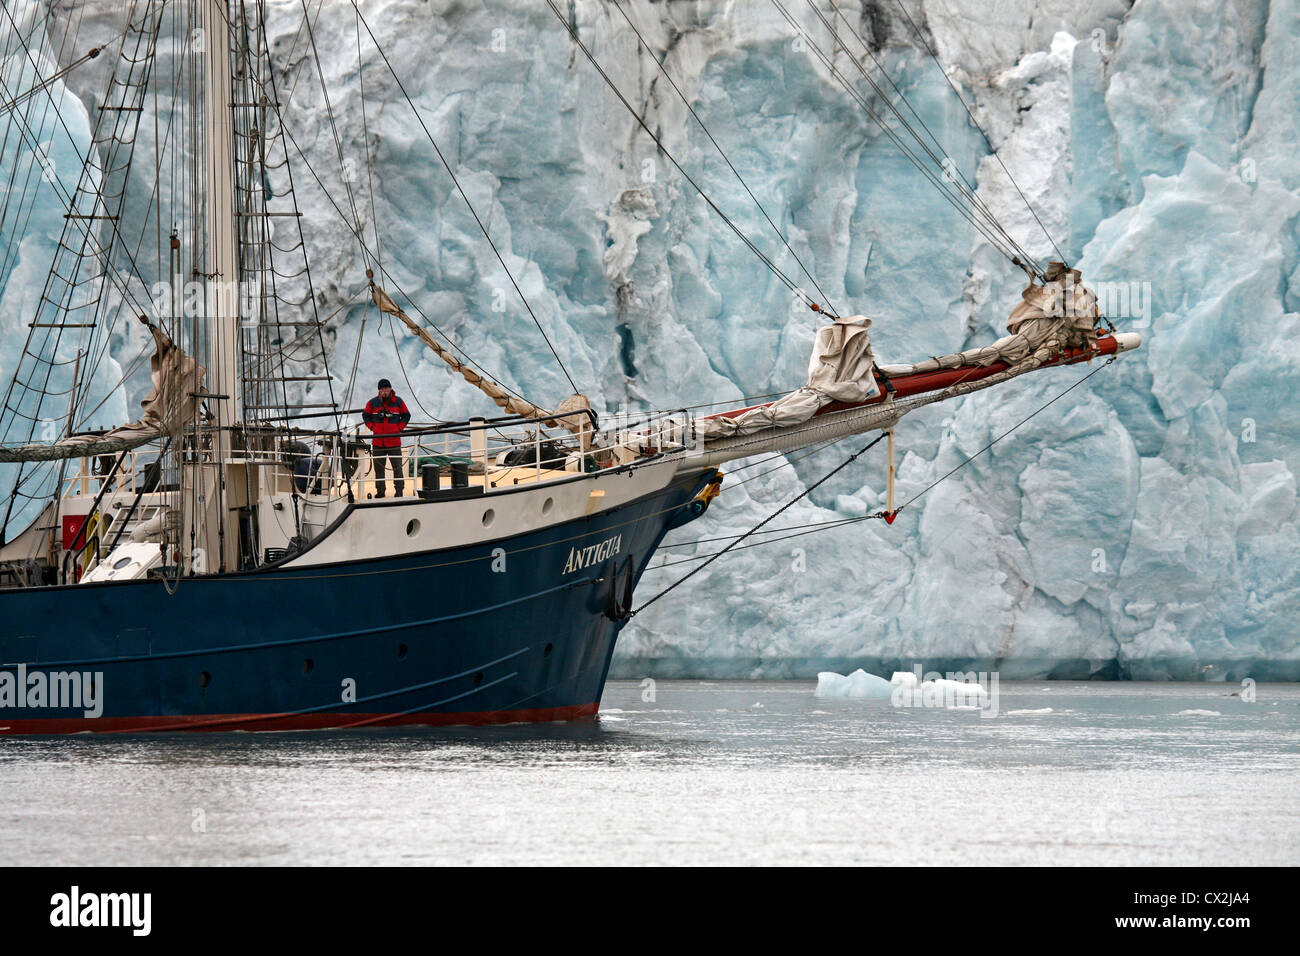 The tall ship / barquentine Antigua sailing with tourists along glacier at Svalbard, Spitsbergen, Norway - Stock Image